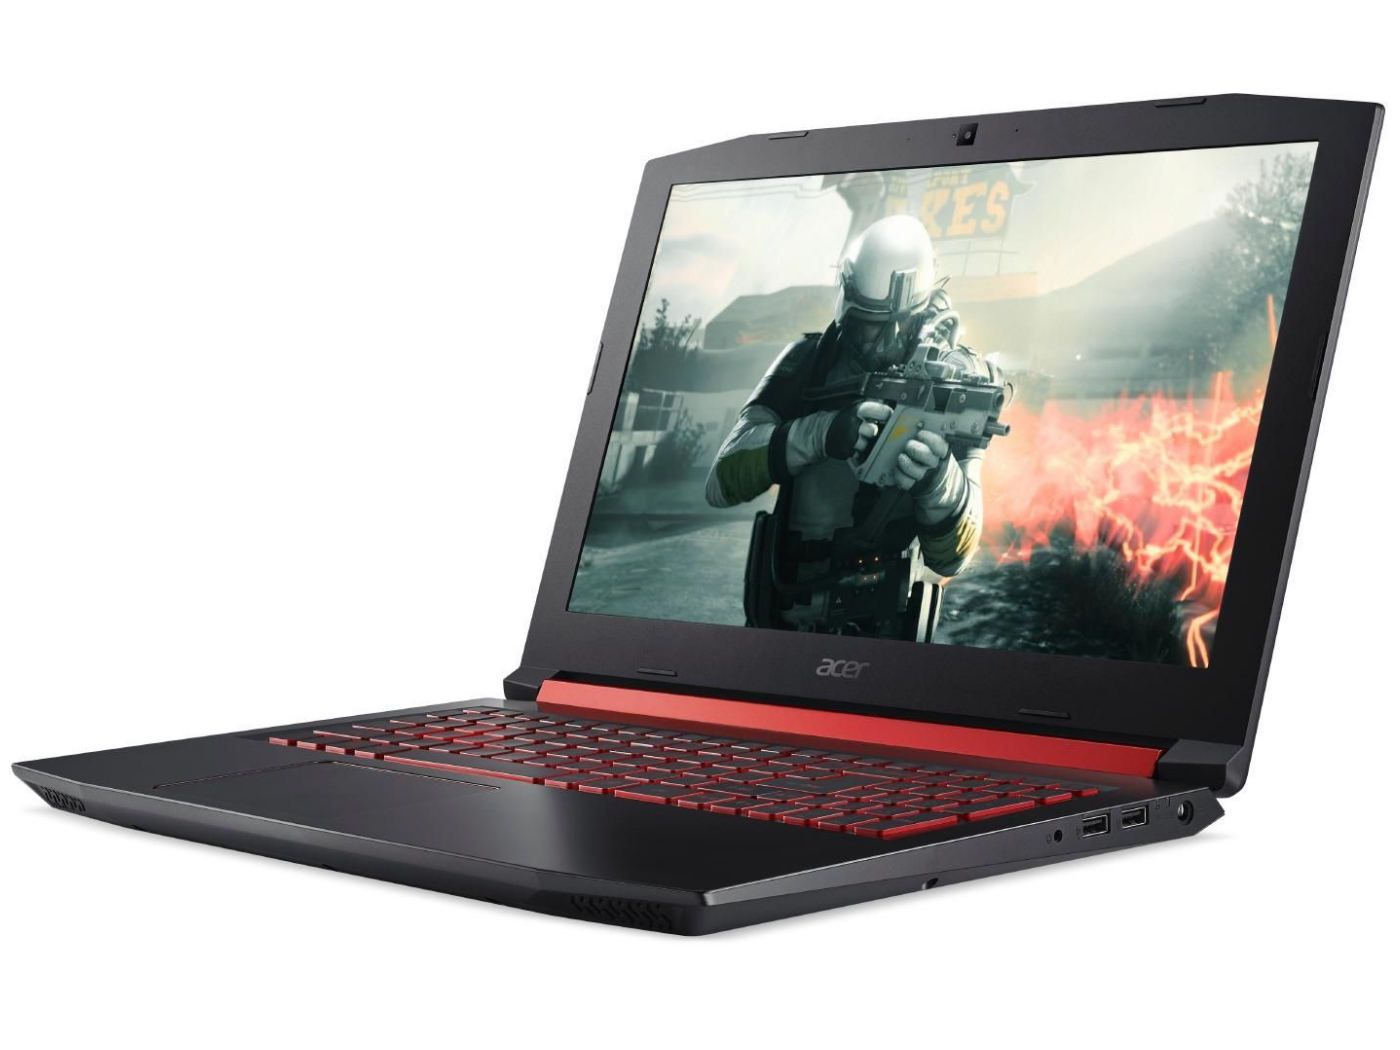 Acer Nitro 5 7700hq Gtx 1050 Ti Laptop Review Notebookcheck Net Reviews